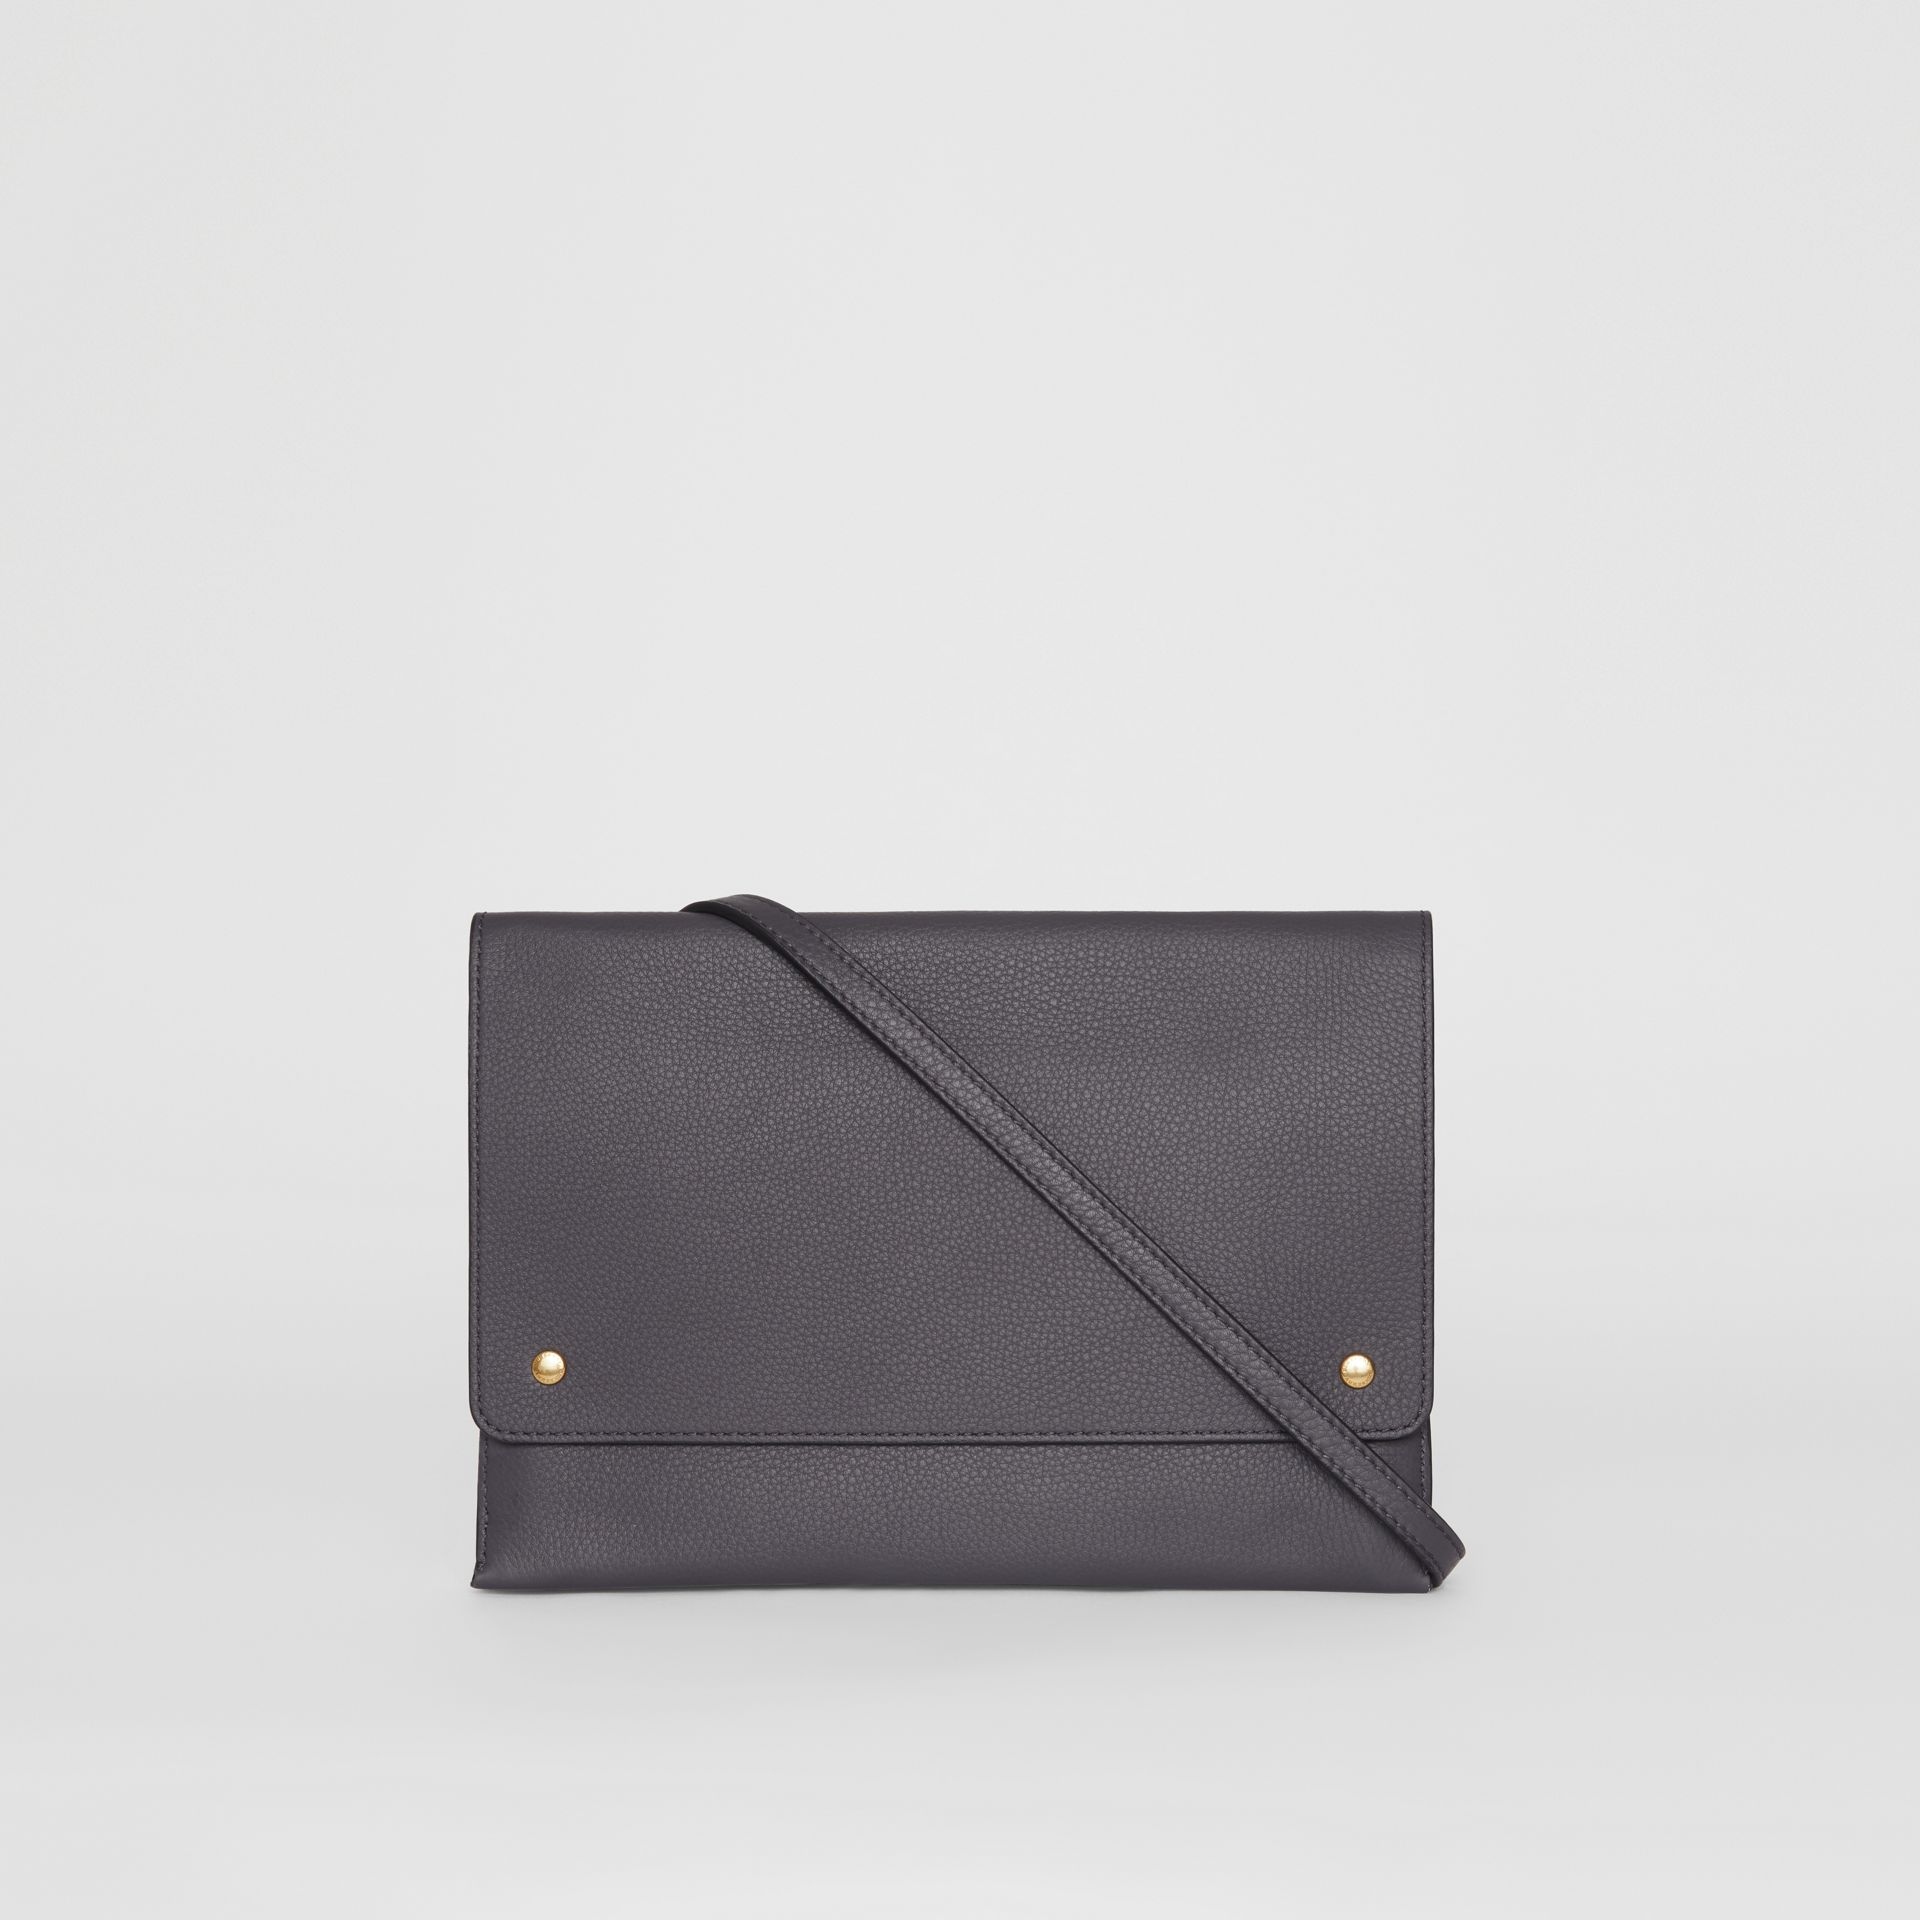 Leather Envelope Crossbody Bag in Charcoal Grey - Women | Burberry Australia - gallery image 5